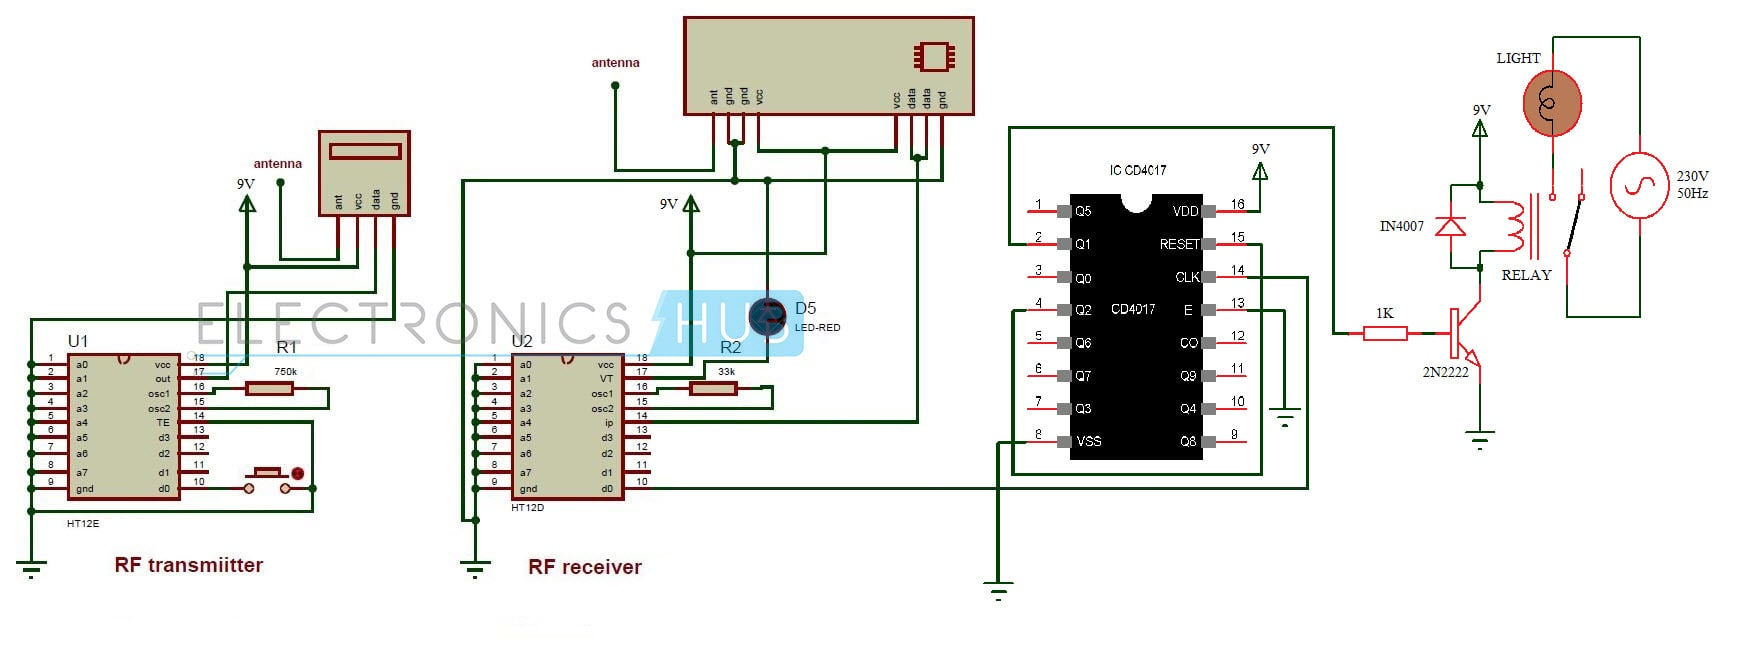 hight resolution of control circuit control circuit schematic diagram radio control rc servo circuit diagram likewise ir remote control switch circuit